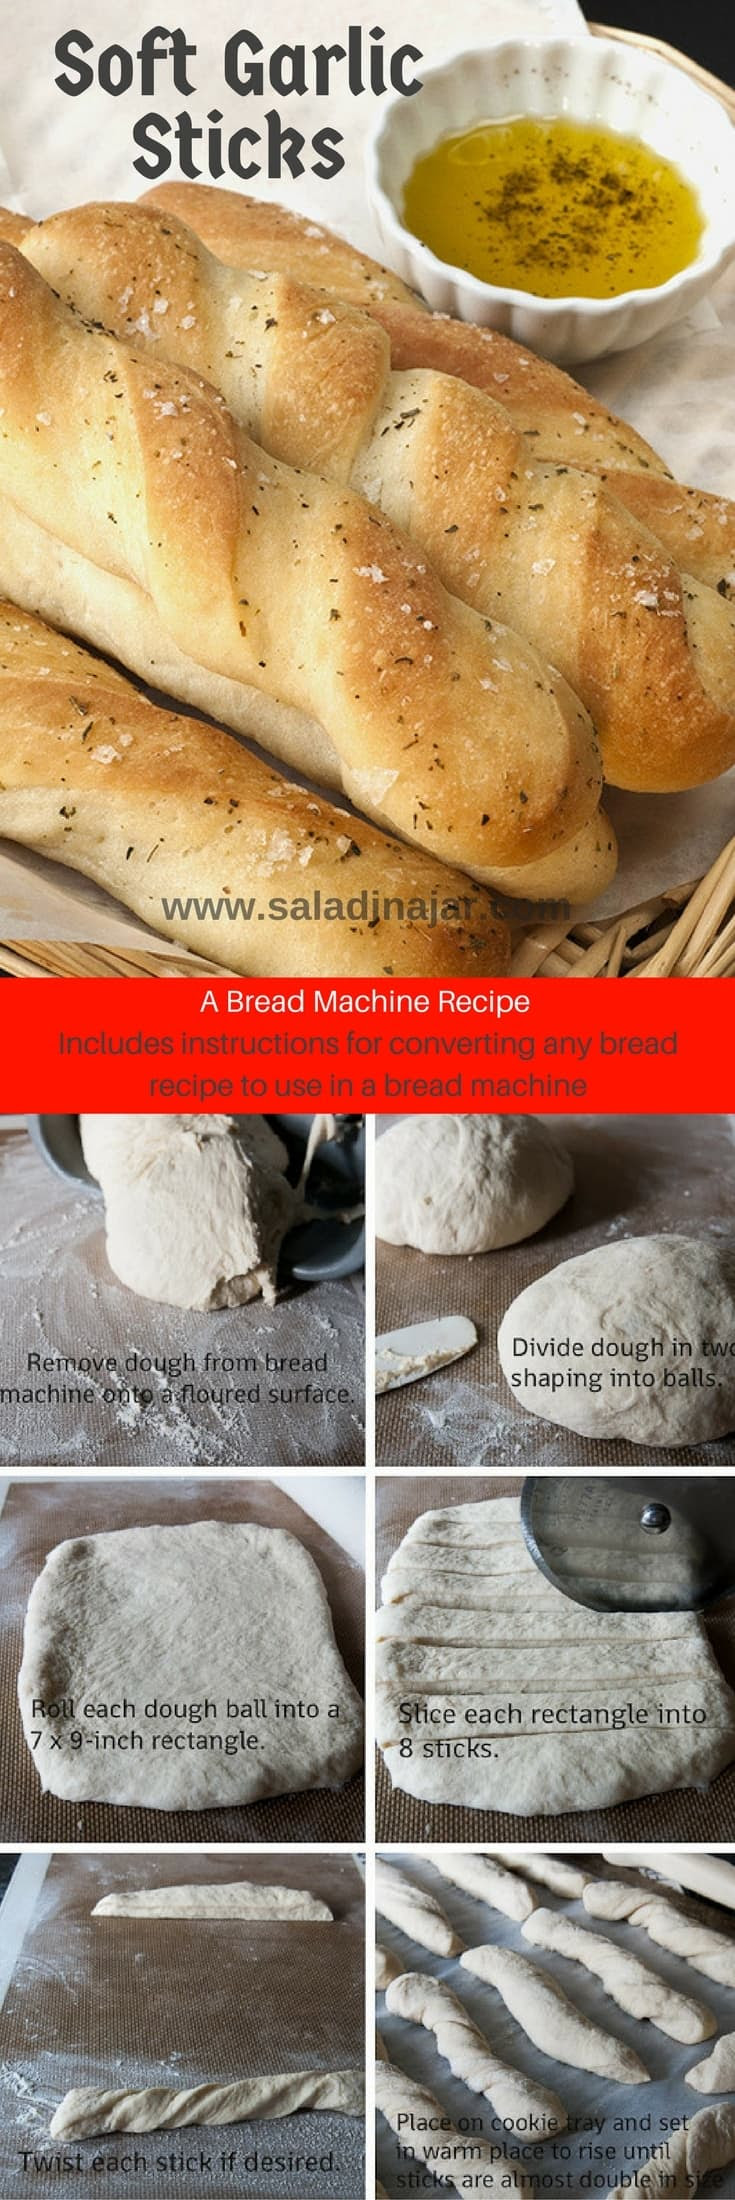 How to Convert a Yeast Bread Recipe to Use in a Bread Machine